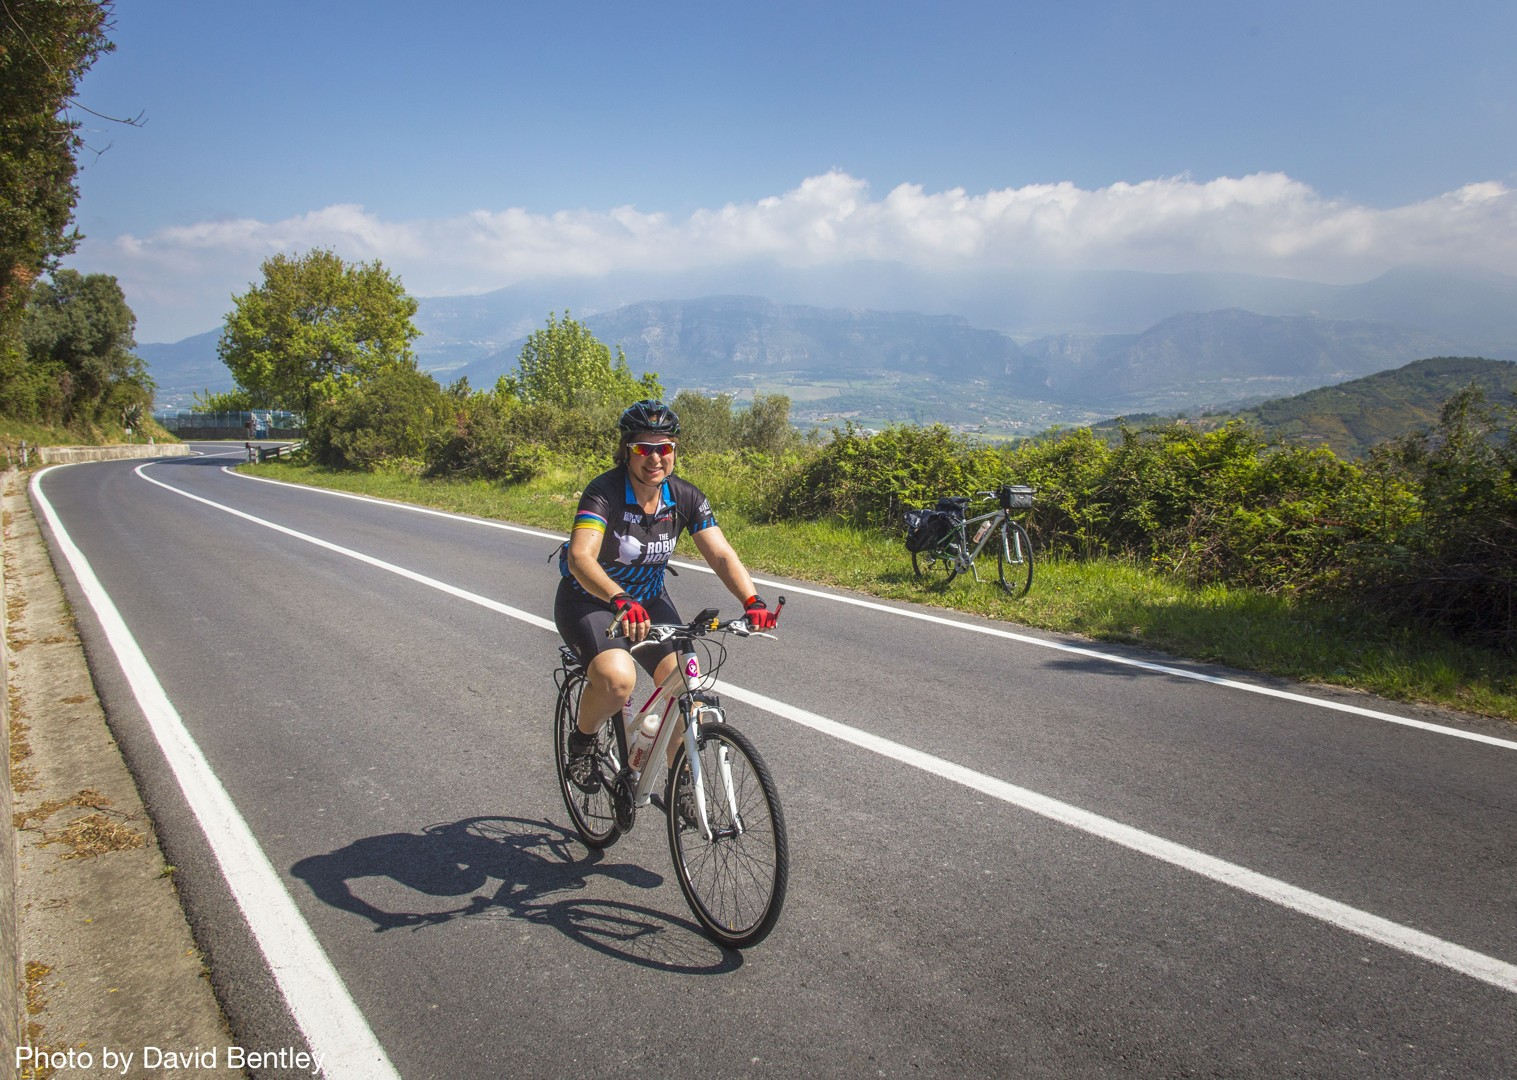 self-guided-cycling-holiday-in-italy-amalfi-coast-and-cilento-explore-at-your-own-pace.jpg - Italy - Cilento and The Amalfi Coast - Self-Guided Leisure Cycling Holiday - Italia Leisure and Family Cycling